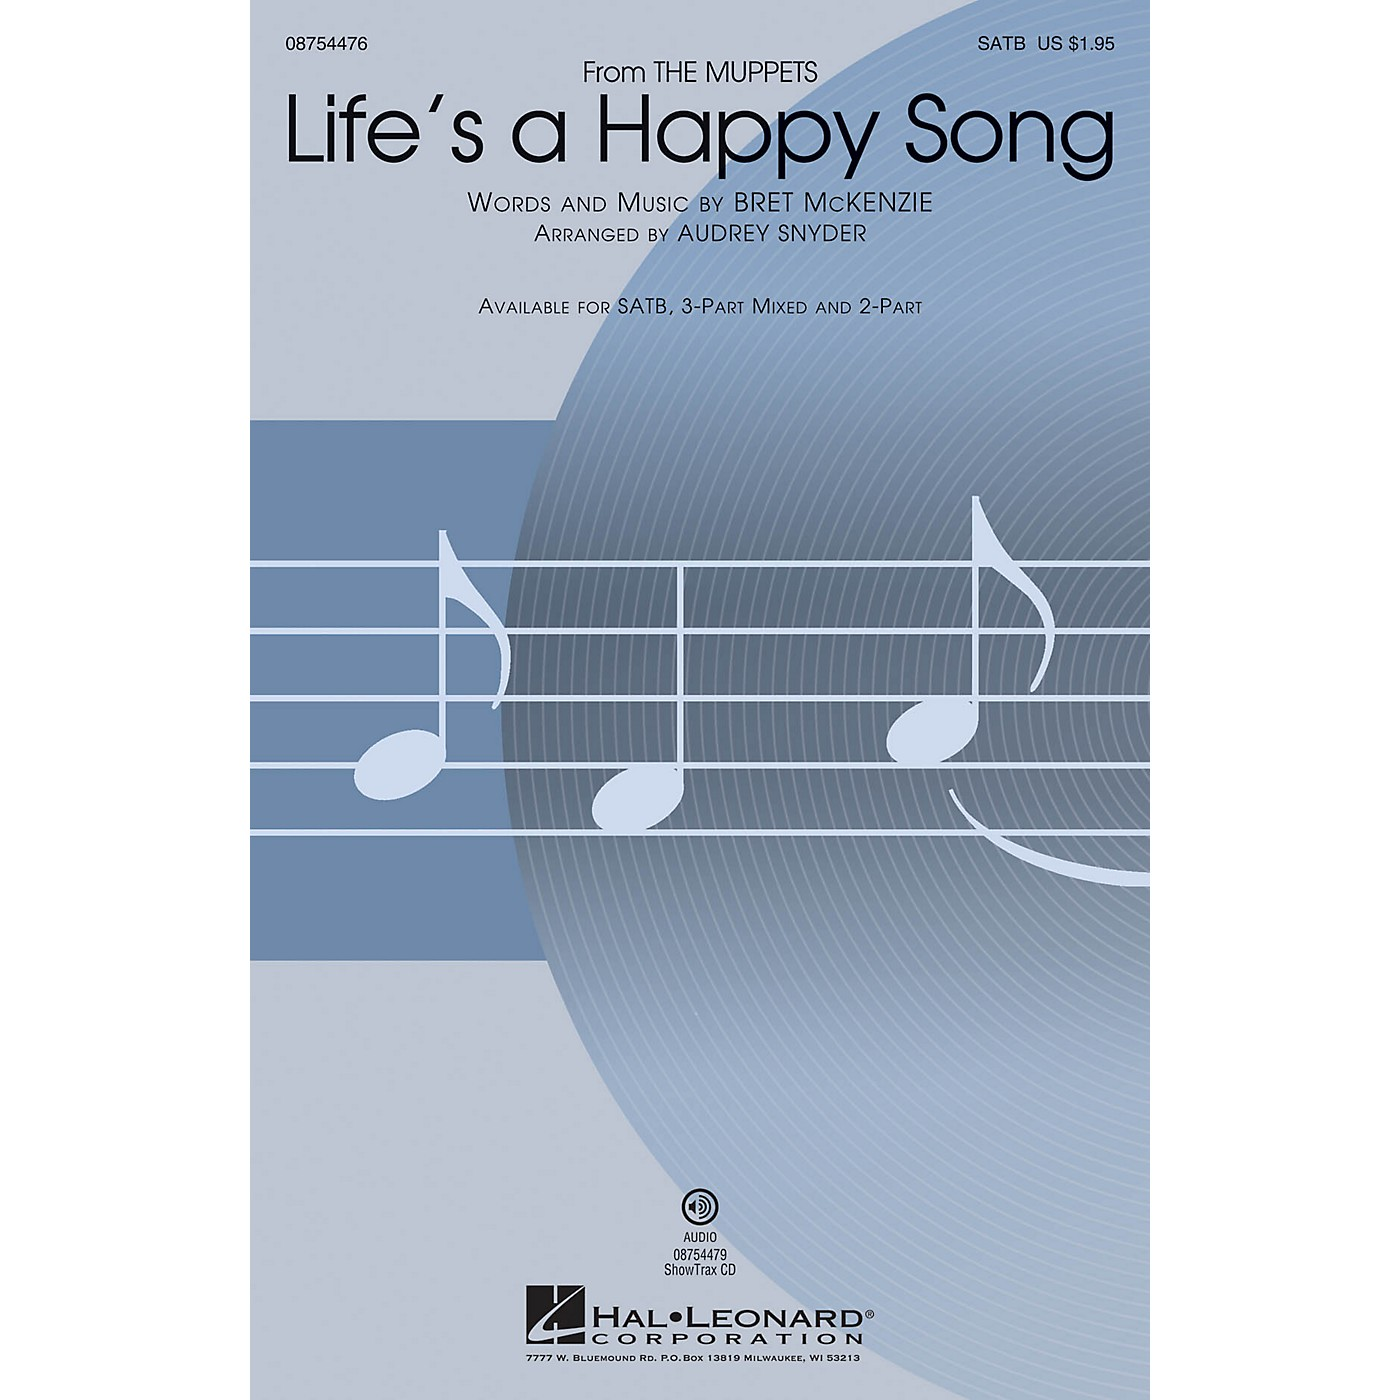 Hal Leonard Life's a Happy Song (from The Muppets) 3-Part Mixed by The Muppets Arranged by Audrey Snyder thumbnail